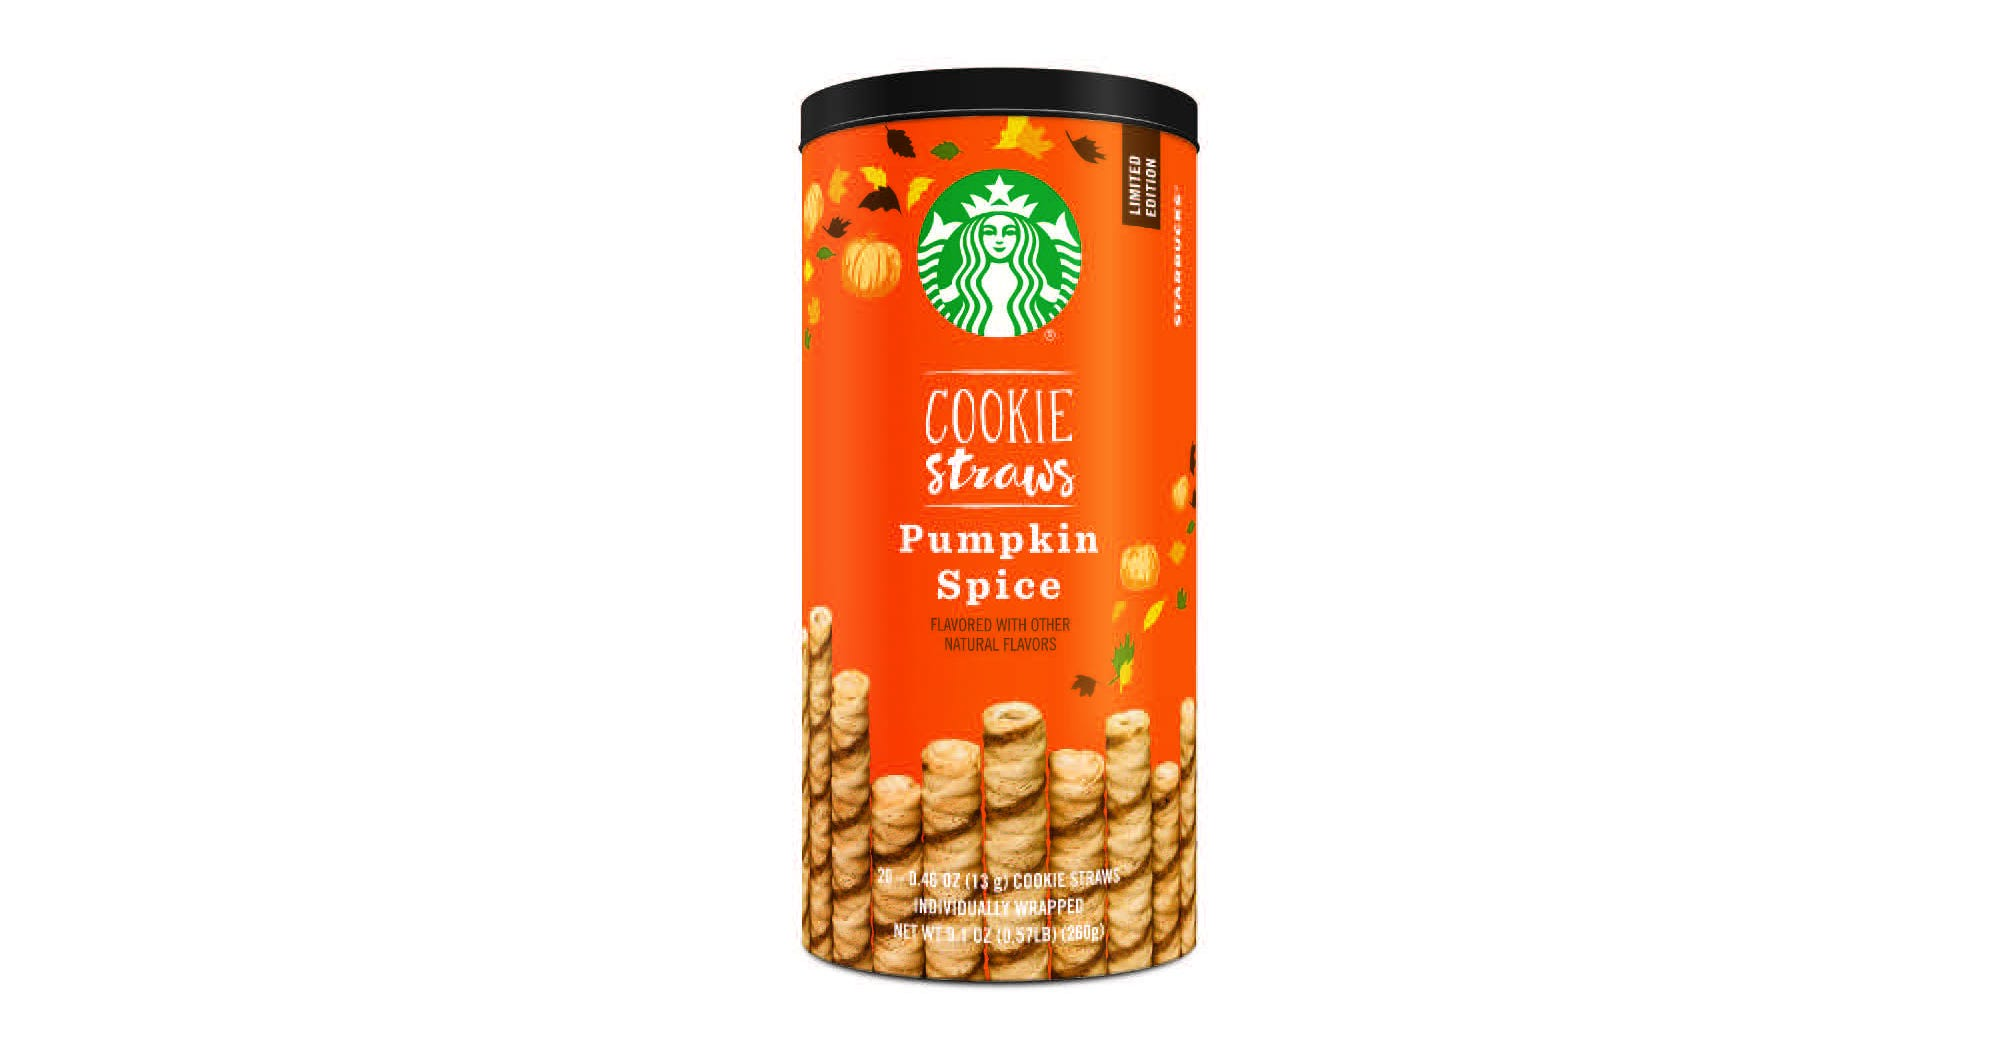 dfd5d27e410 Best Pumpkin Spice Products   Fall Flavored Foods 2018